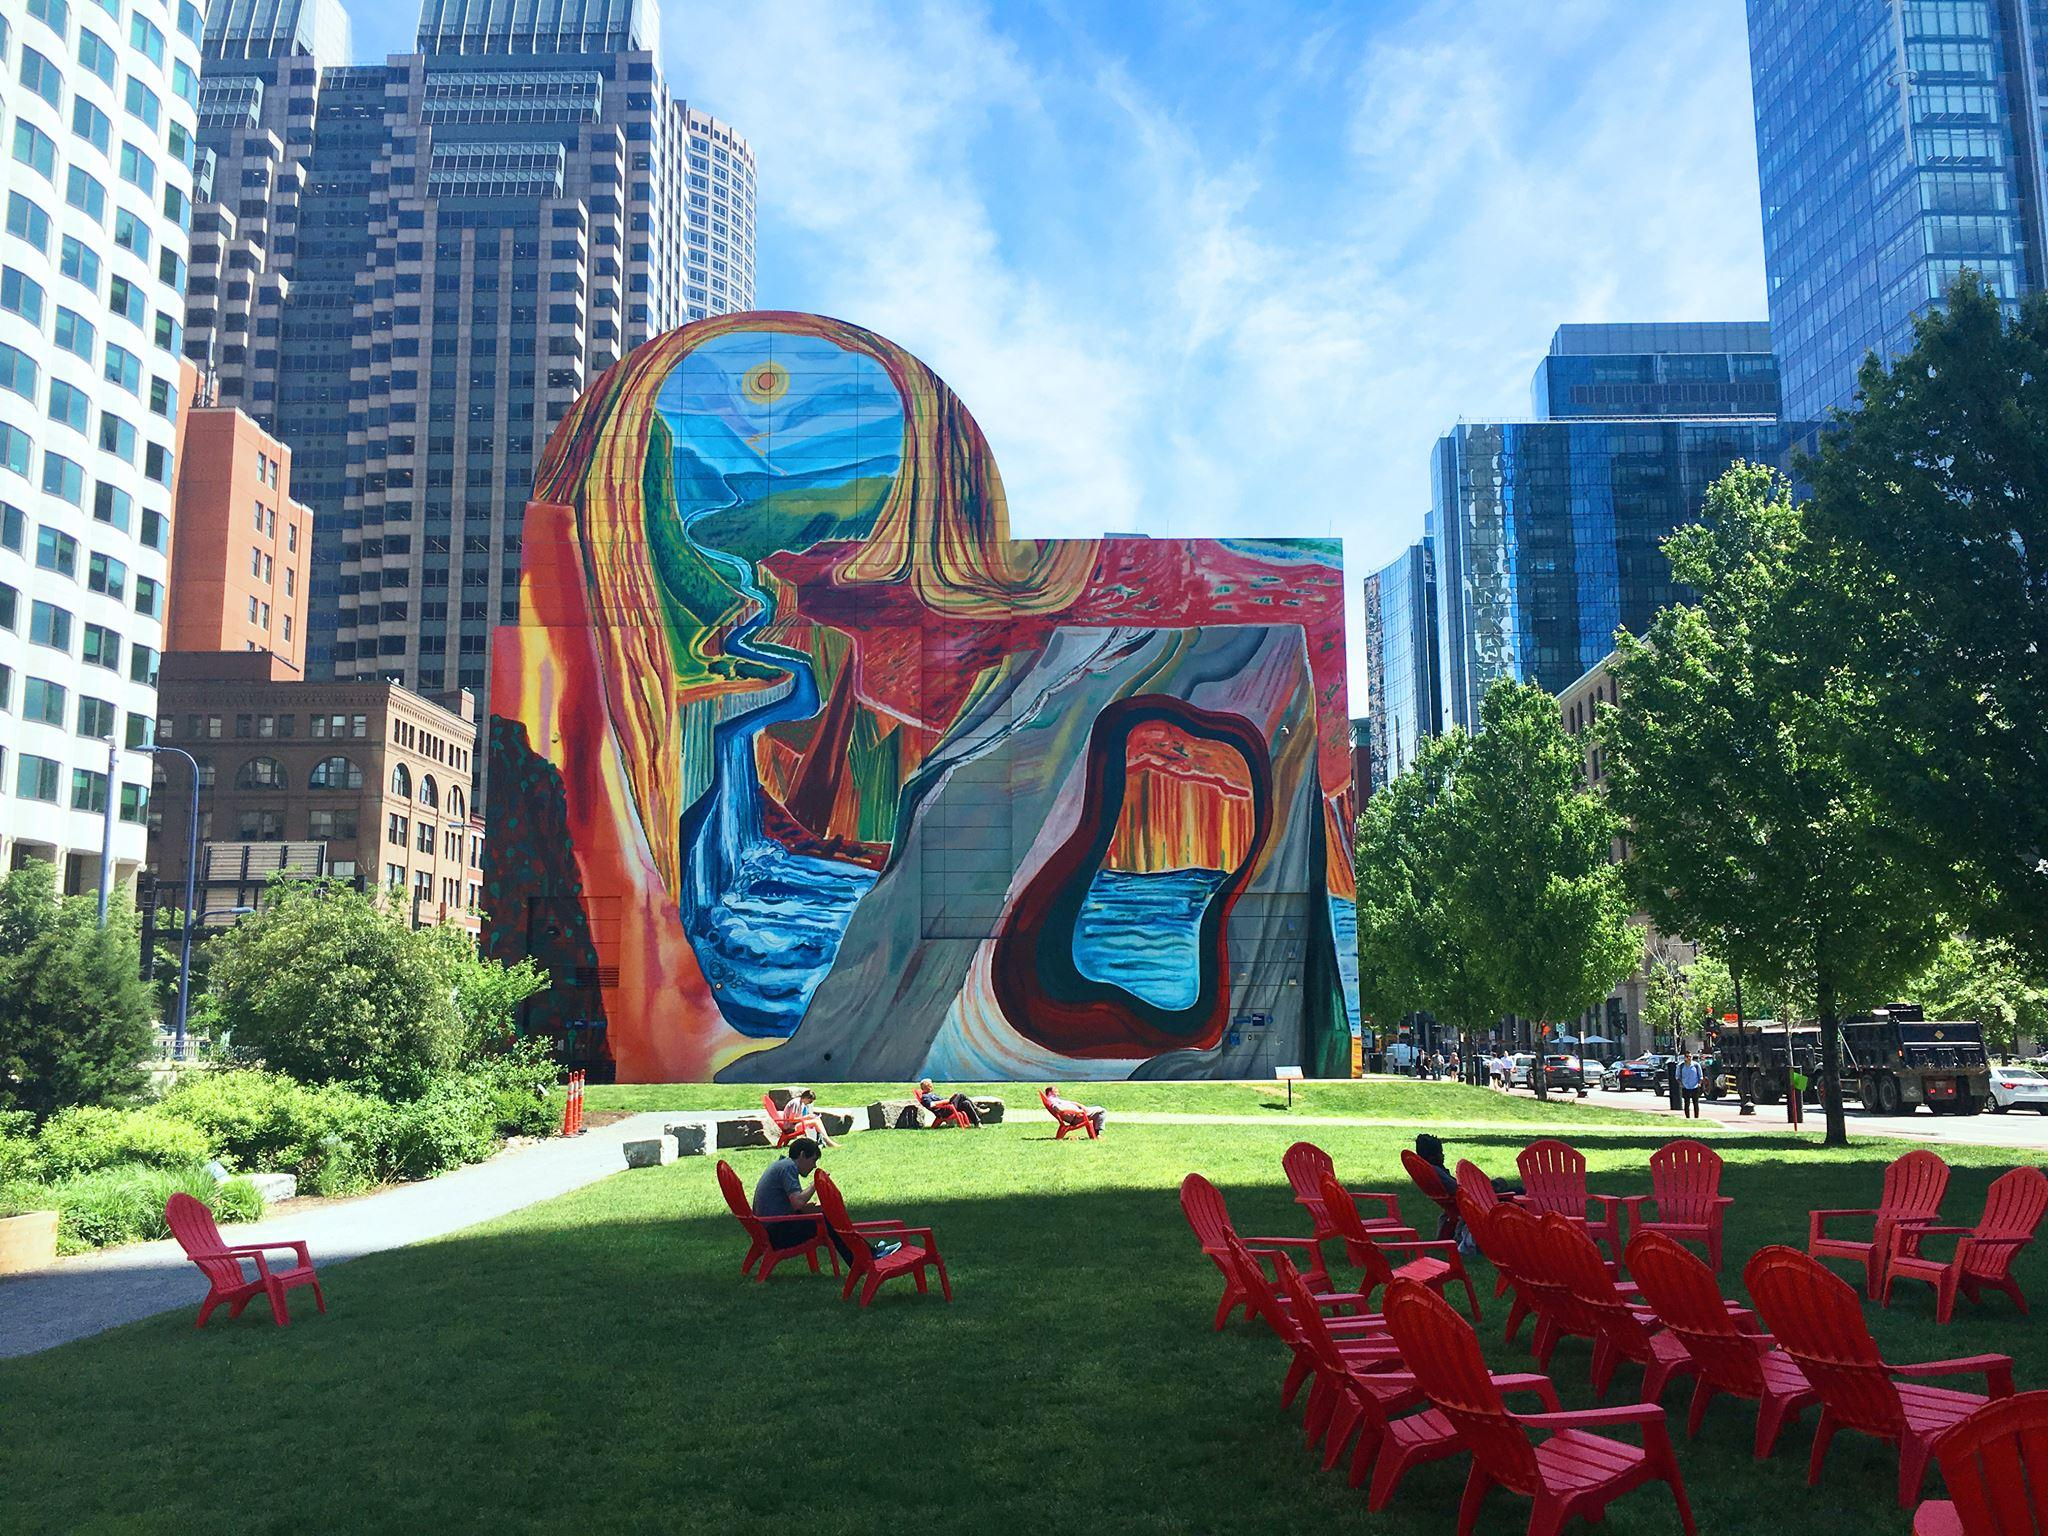 Artwork and outdoor seating at Rose Fitzgerald Kennedy Greenway